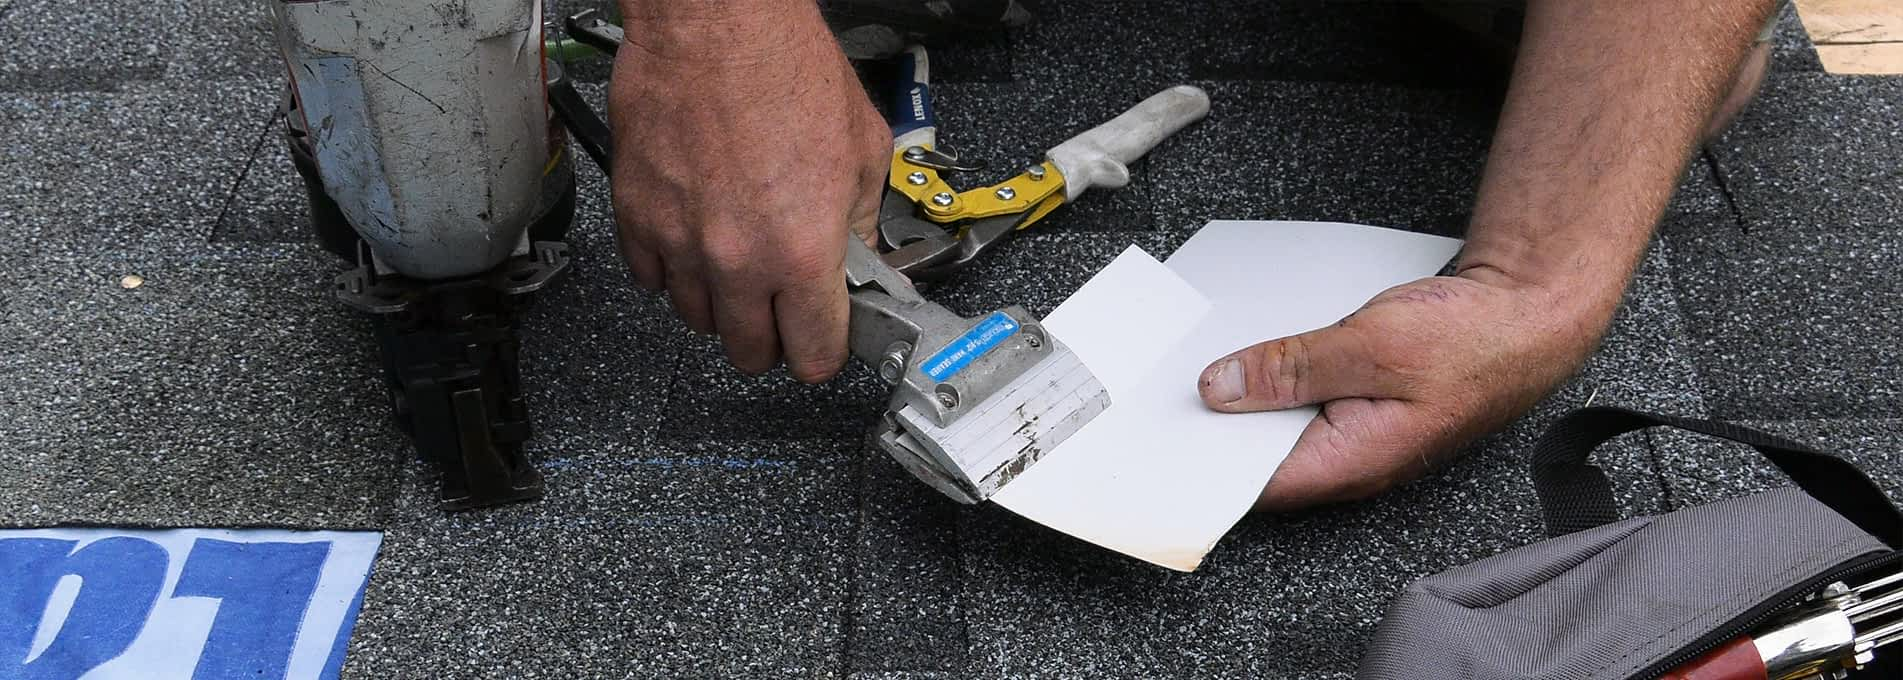 Tips to Consider Before Hiring a Roofing Contractor